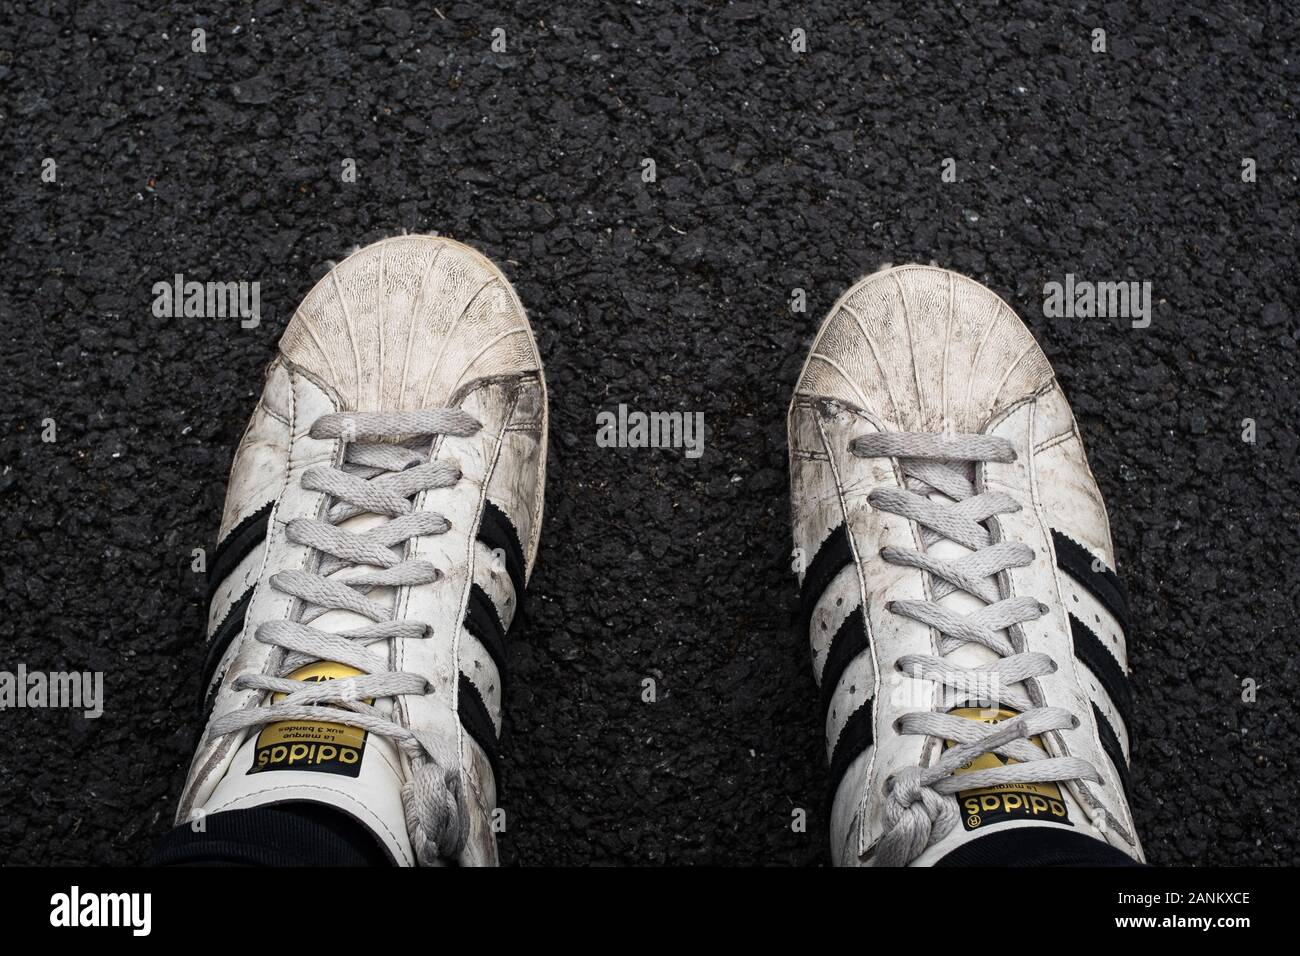 background floor striped black white against trainers adidas